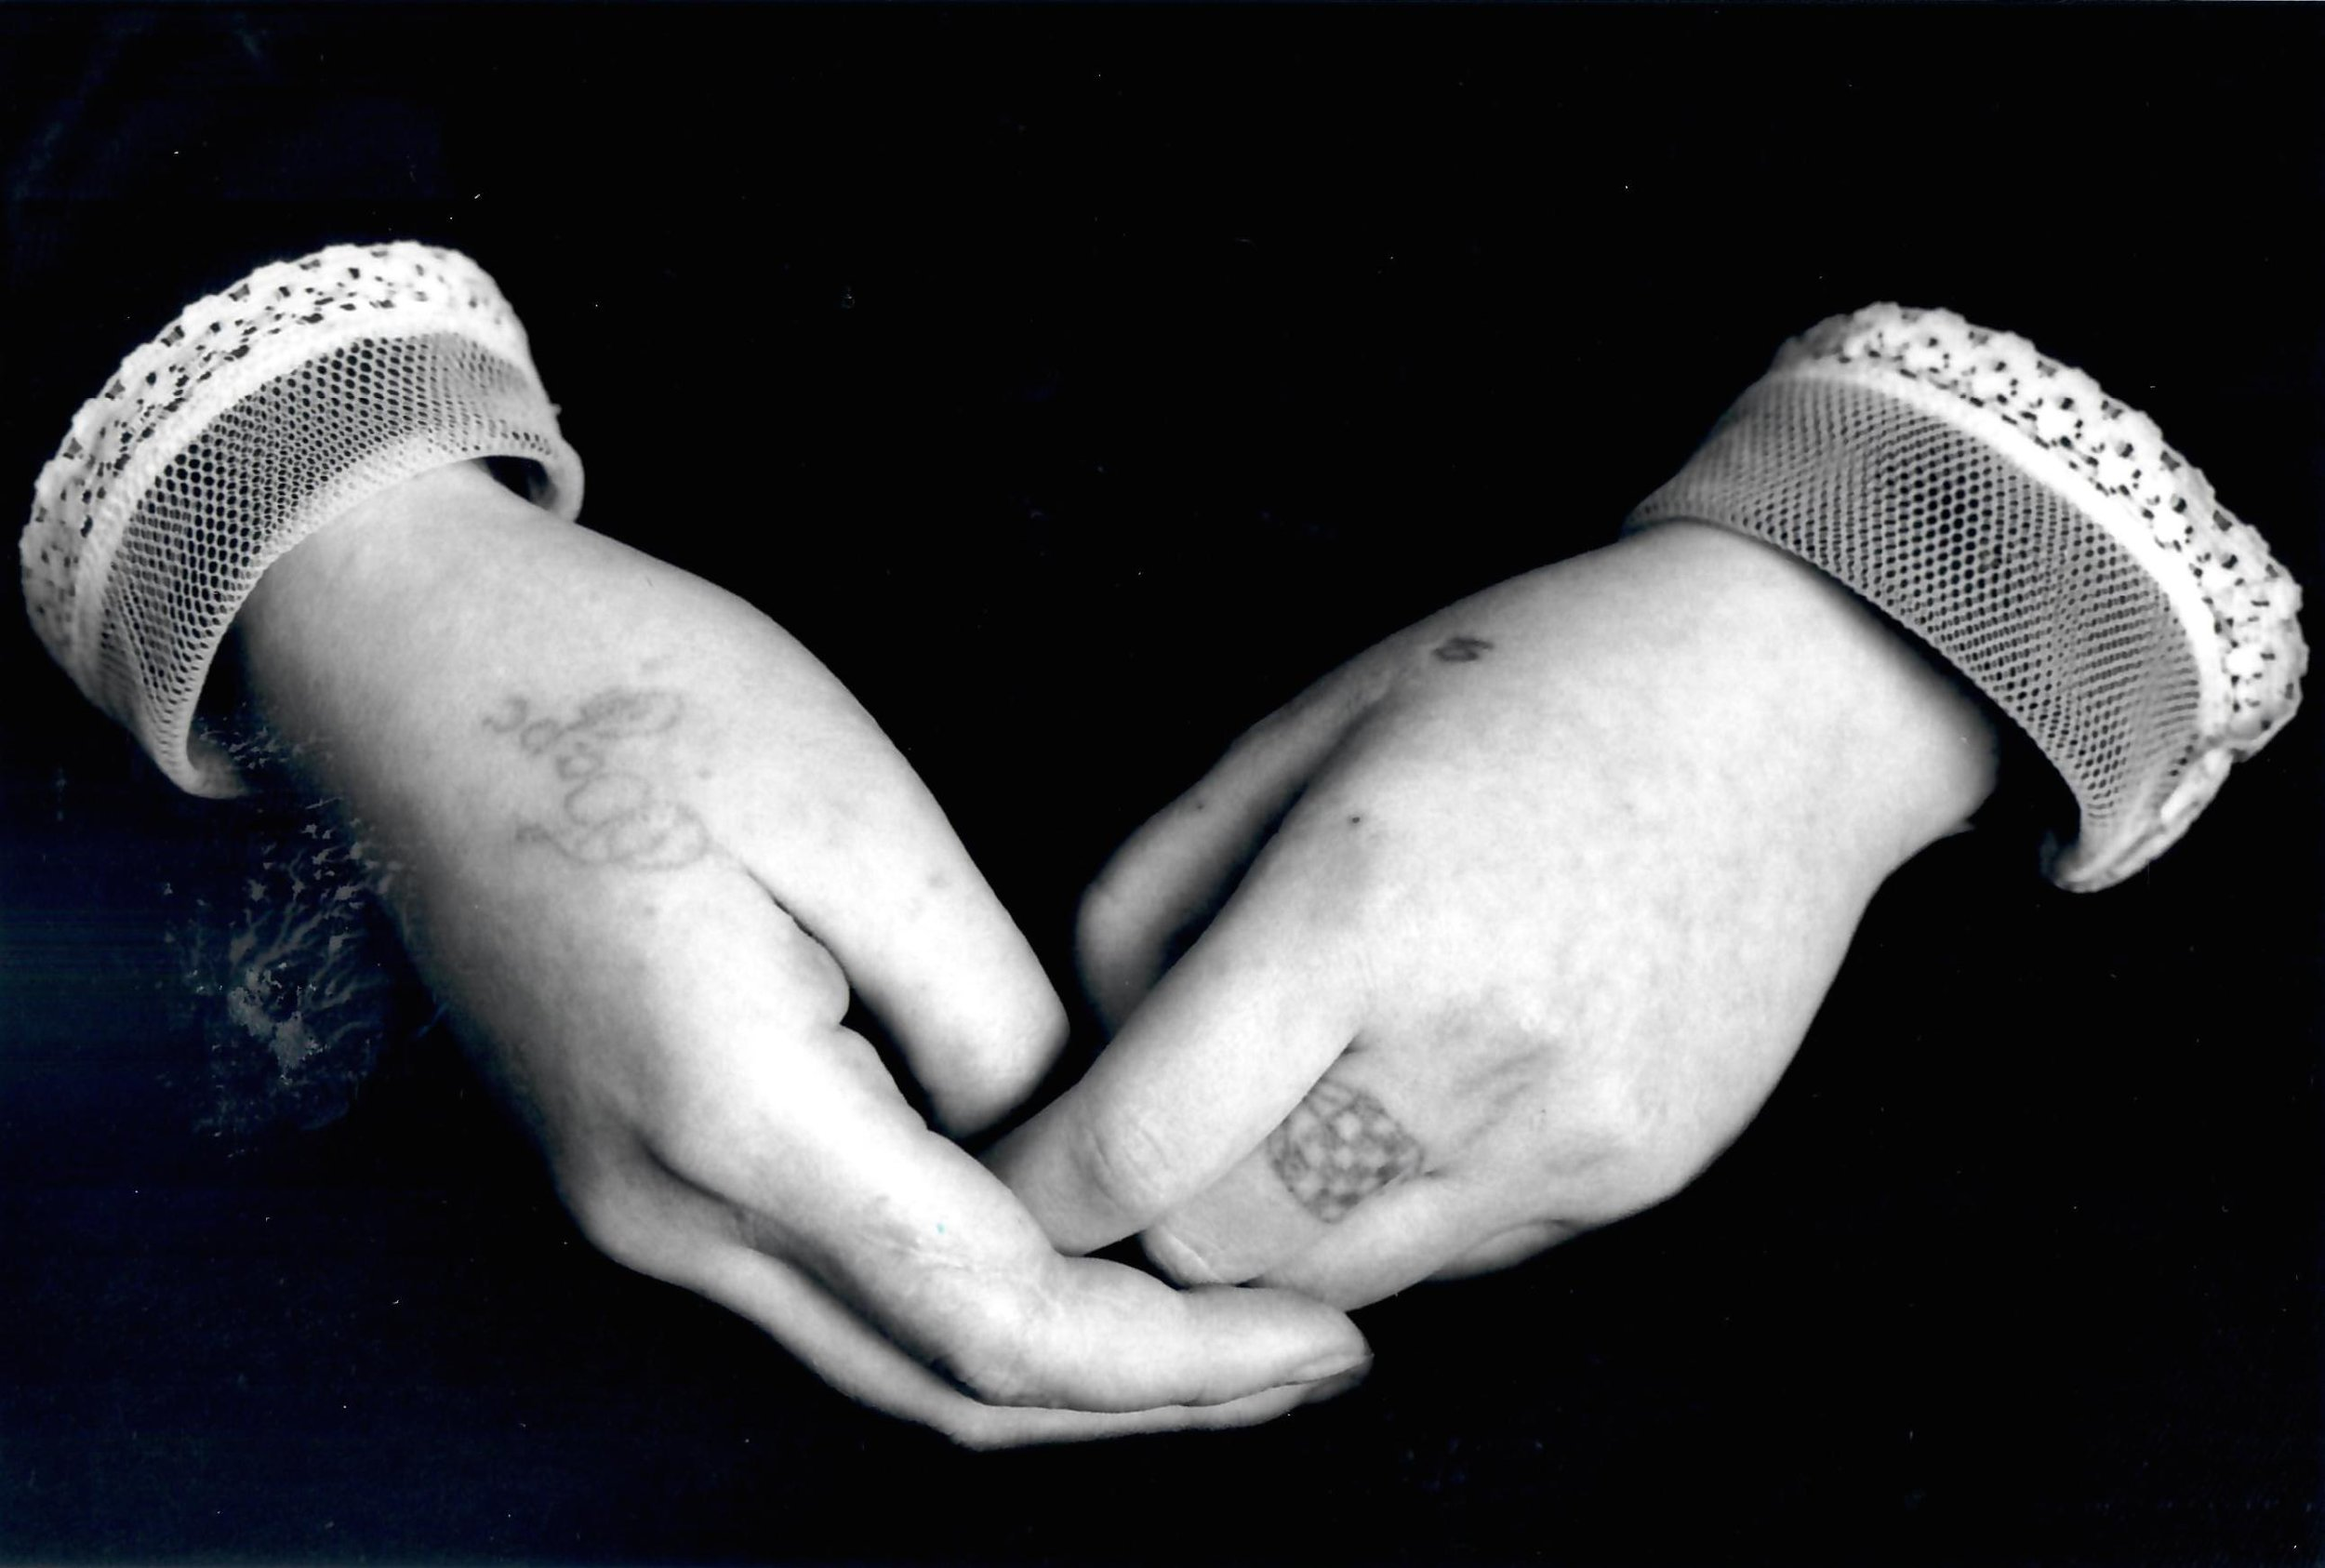 Hands of a Young Prisoner, young women's prison, Ryazan, USSR, 1990